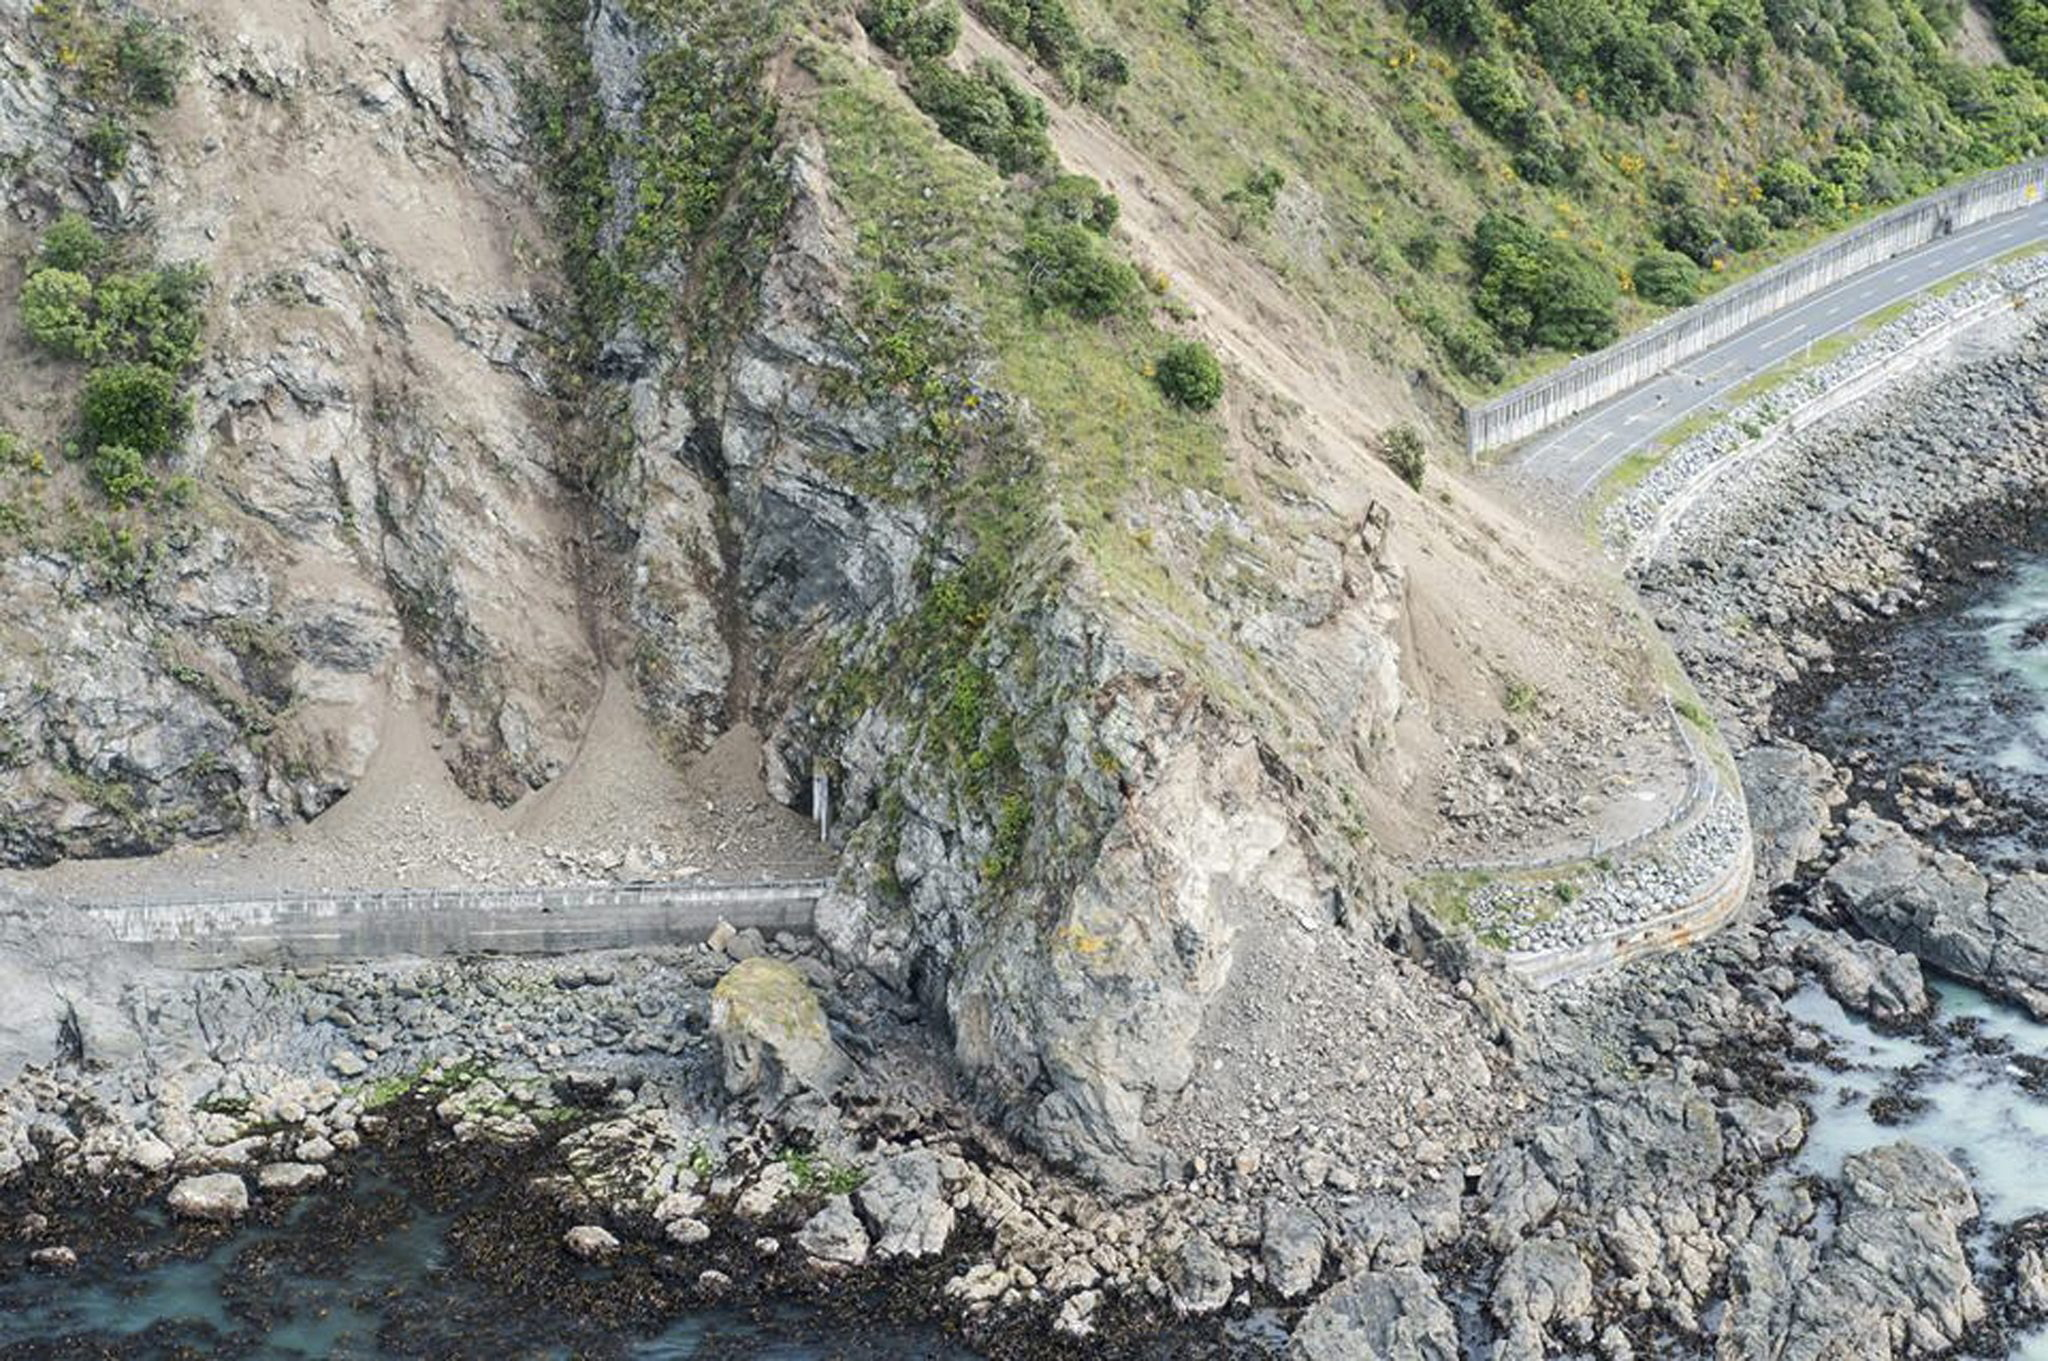 In mid-November, New Zealand was hit by its strongest earthquake in decades. At least nine different faults ruptured but, despite the magnitude of the quake, losses were limited.